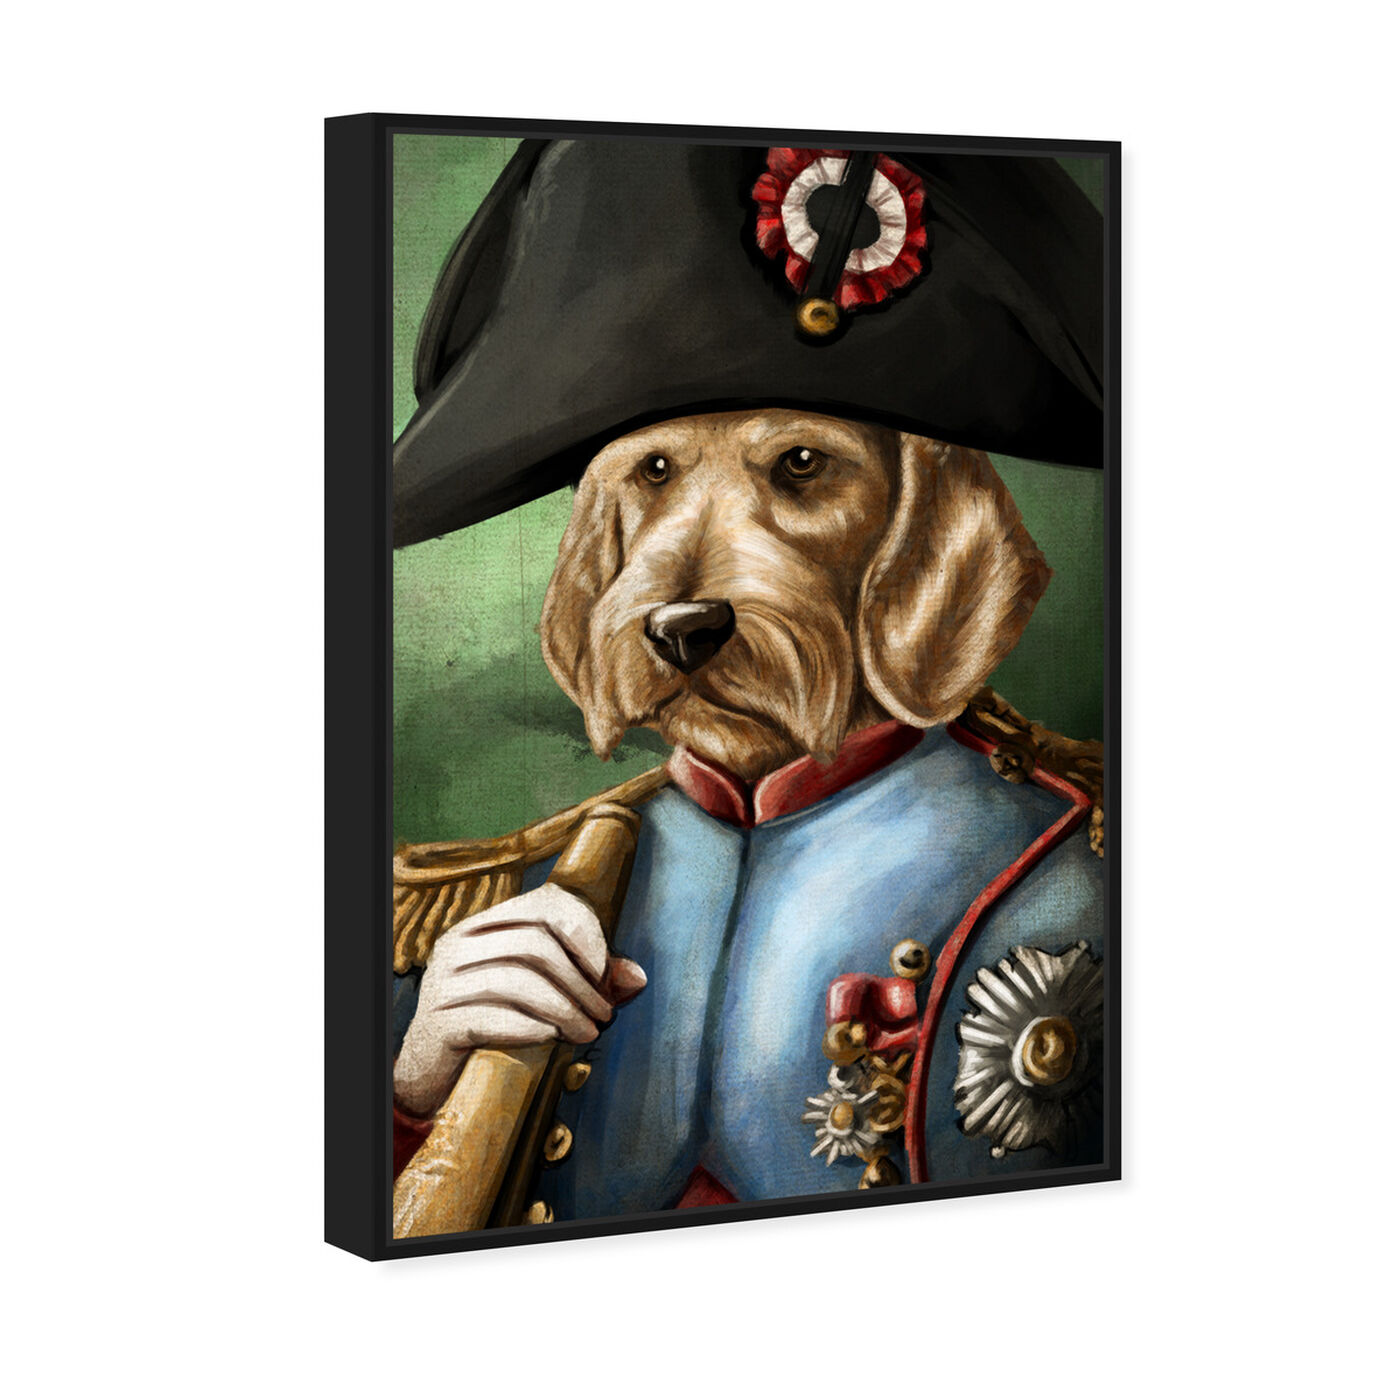 Angled view of Sargent Wired Dashchund featuring animals and dogs and puppies art.